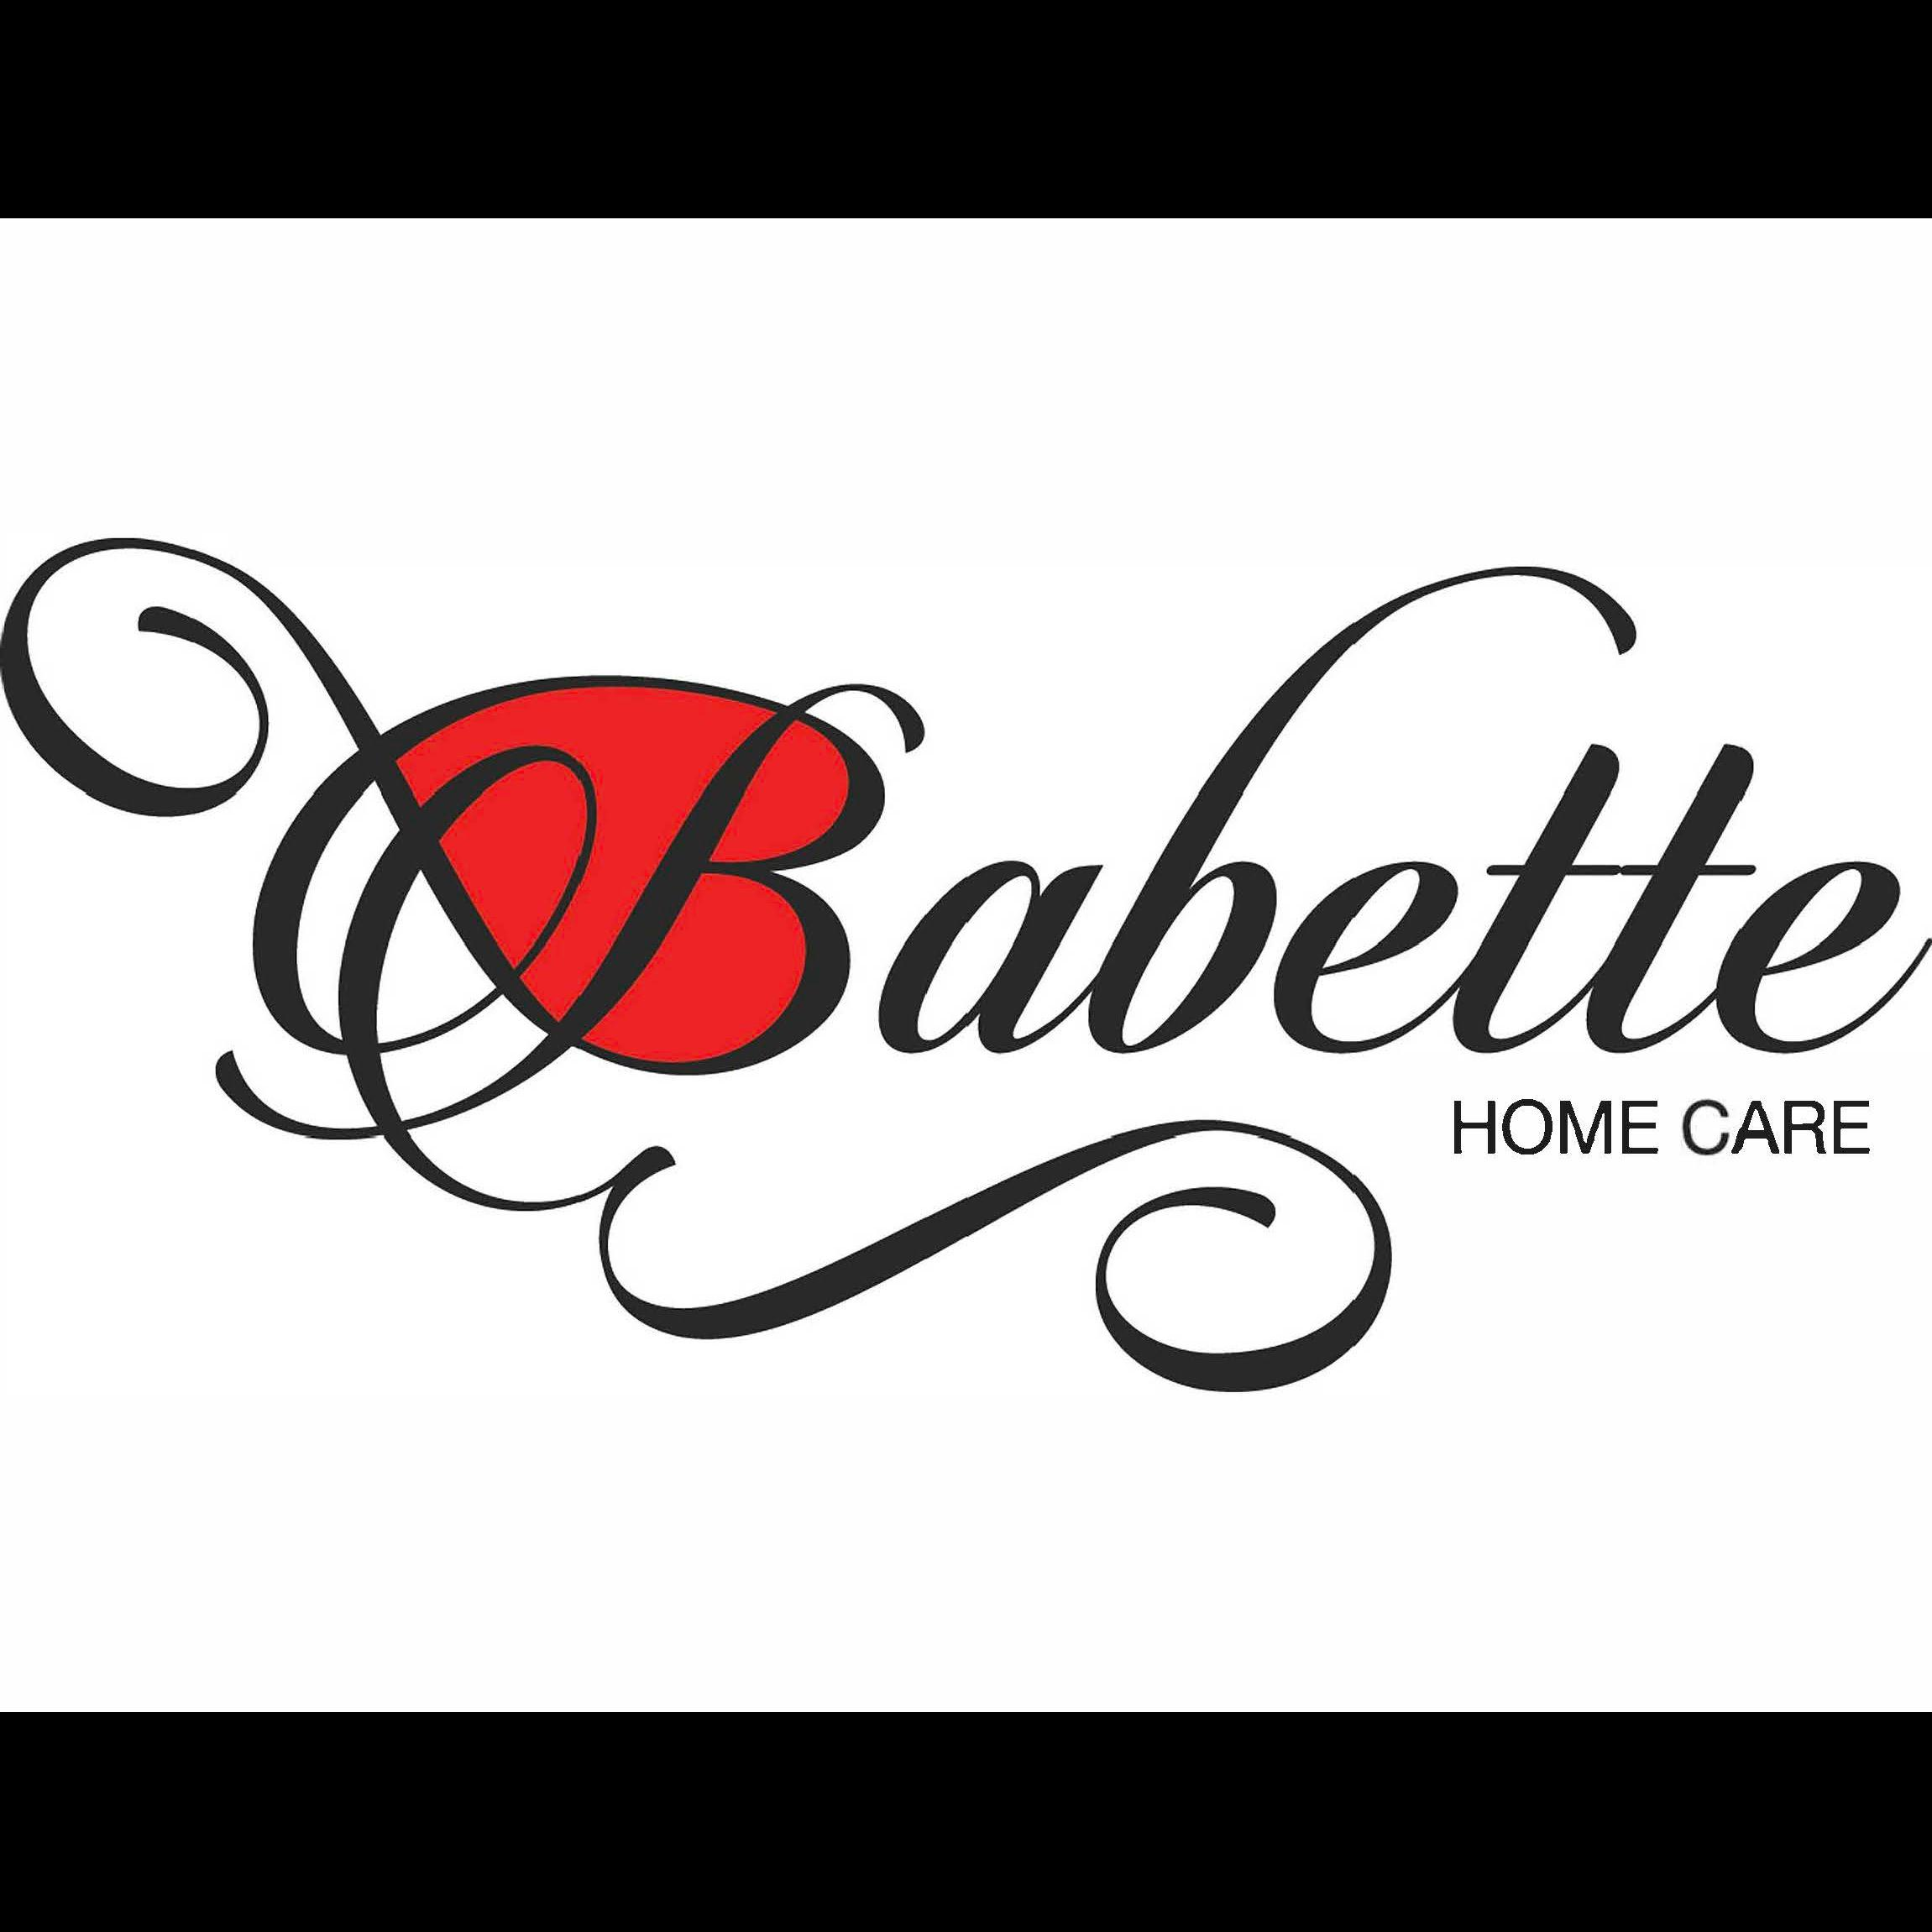 Bebette Home Care